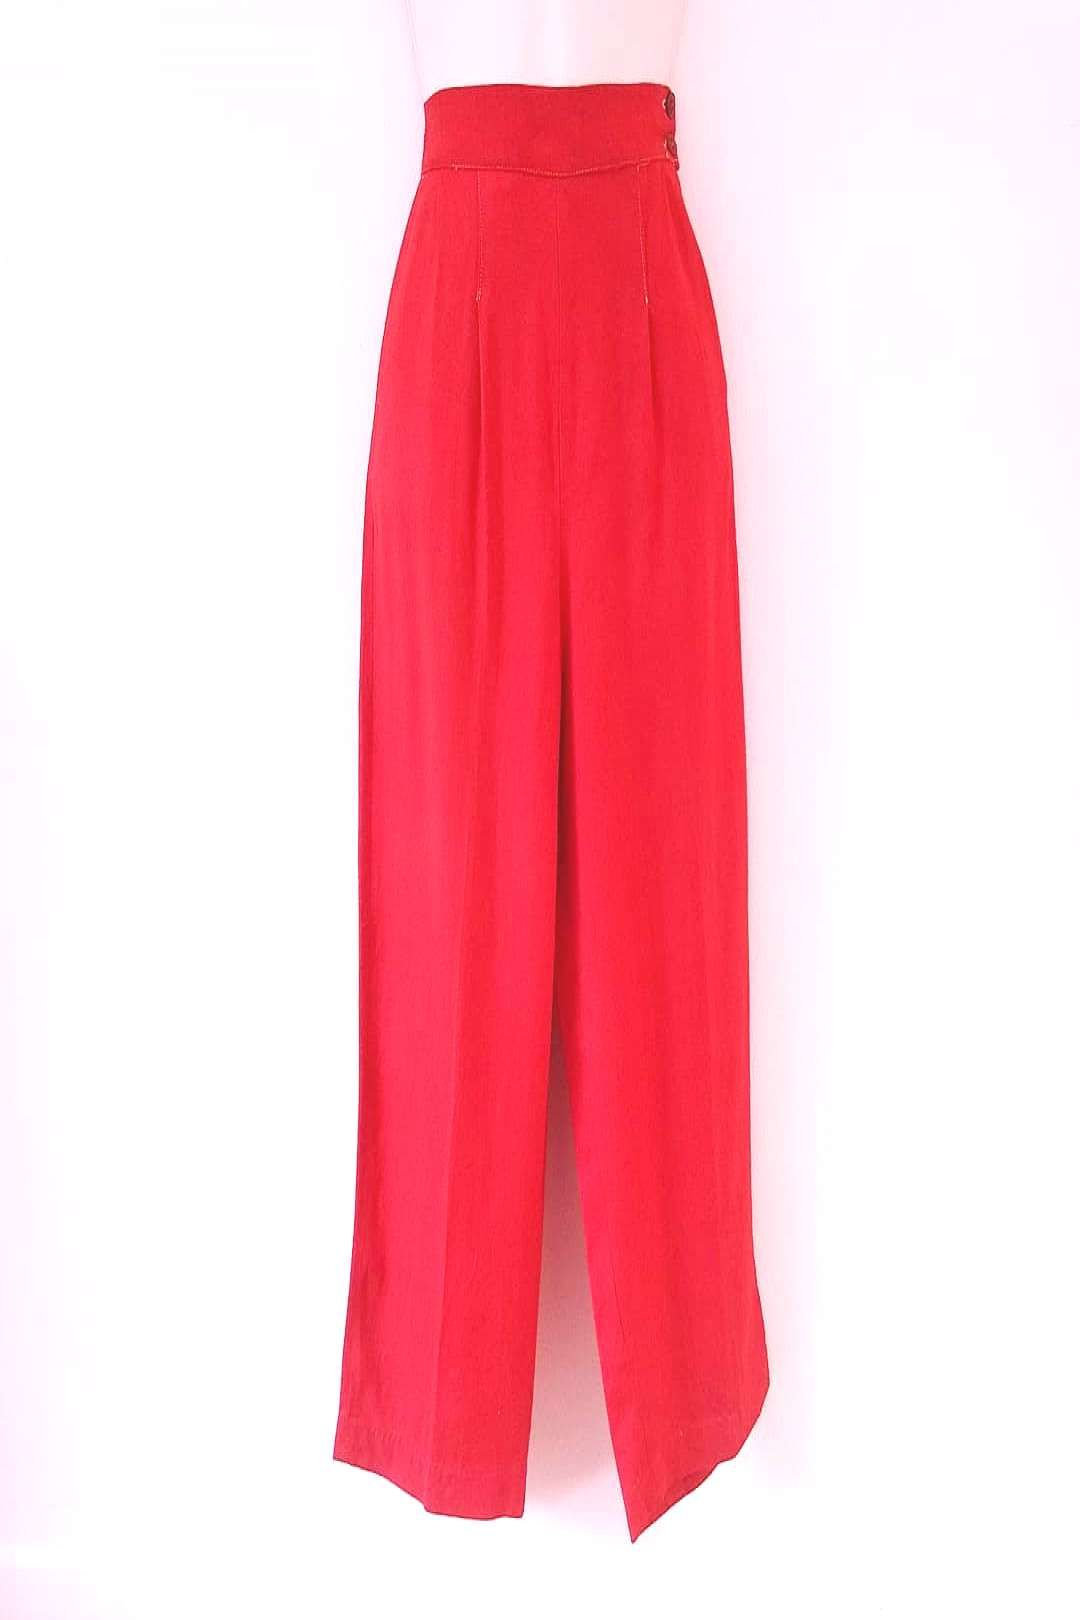 #gabardine #gorgeous #lipstick #standing #people #1940s #pants #waist #with #high #side #red Gorgeous 1940s lipstick red gabardine pants with high waist side You can find 40s fashion and more on our website.Gorgeous 1940s...